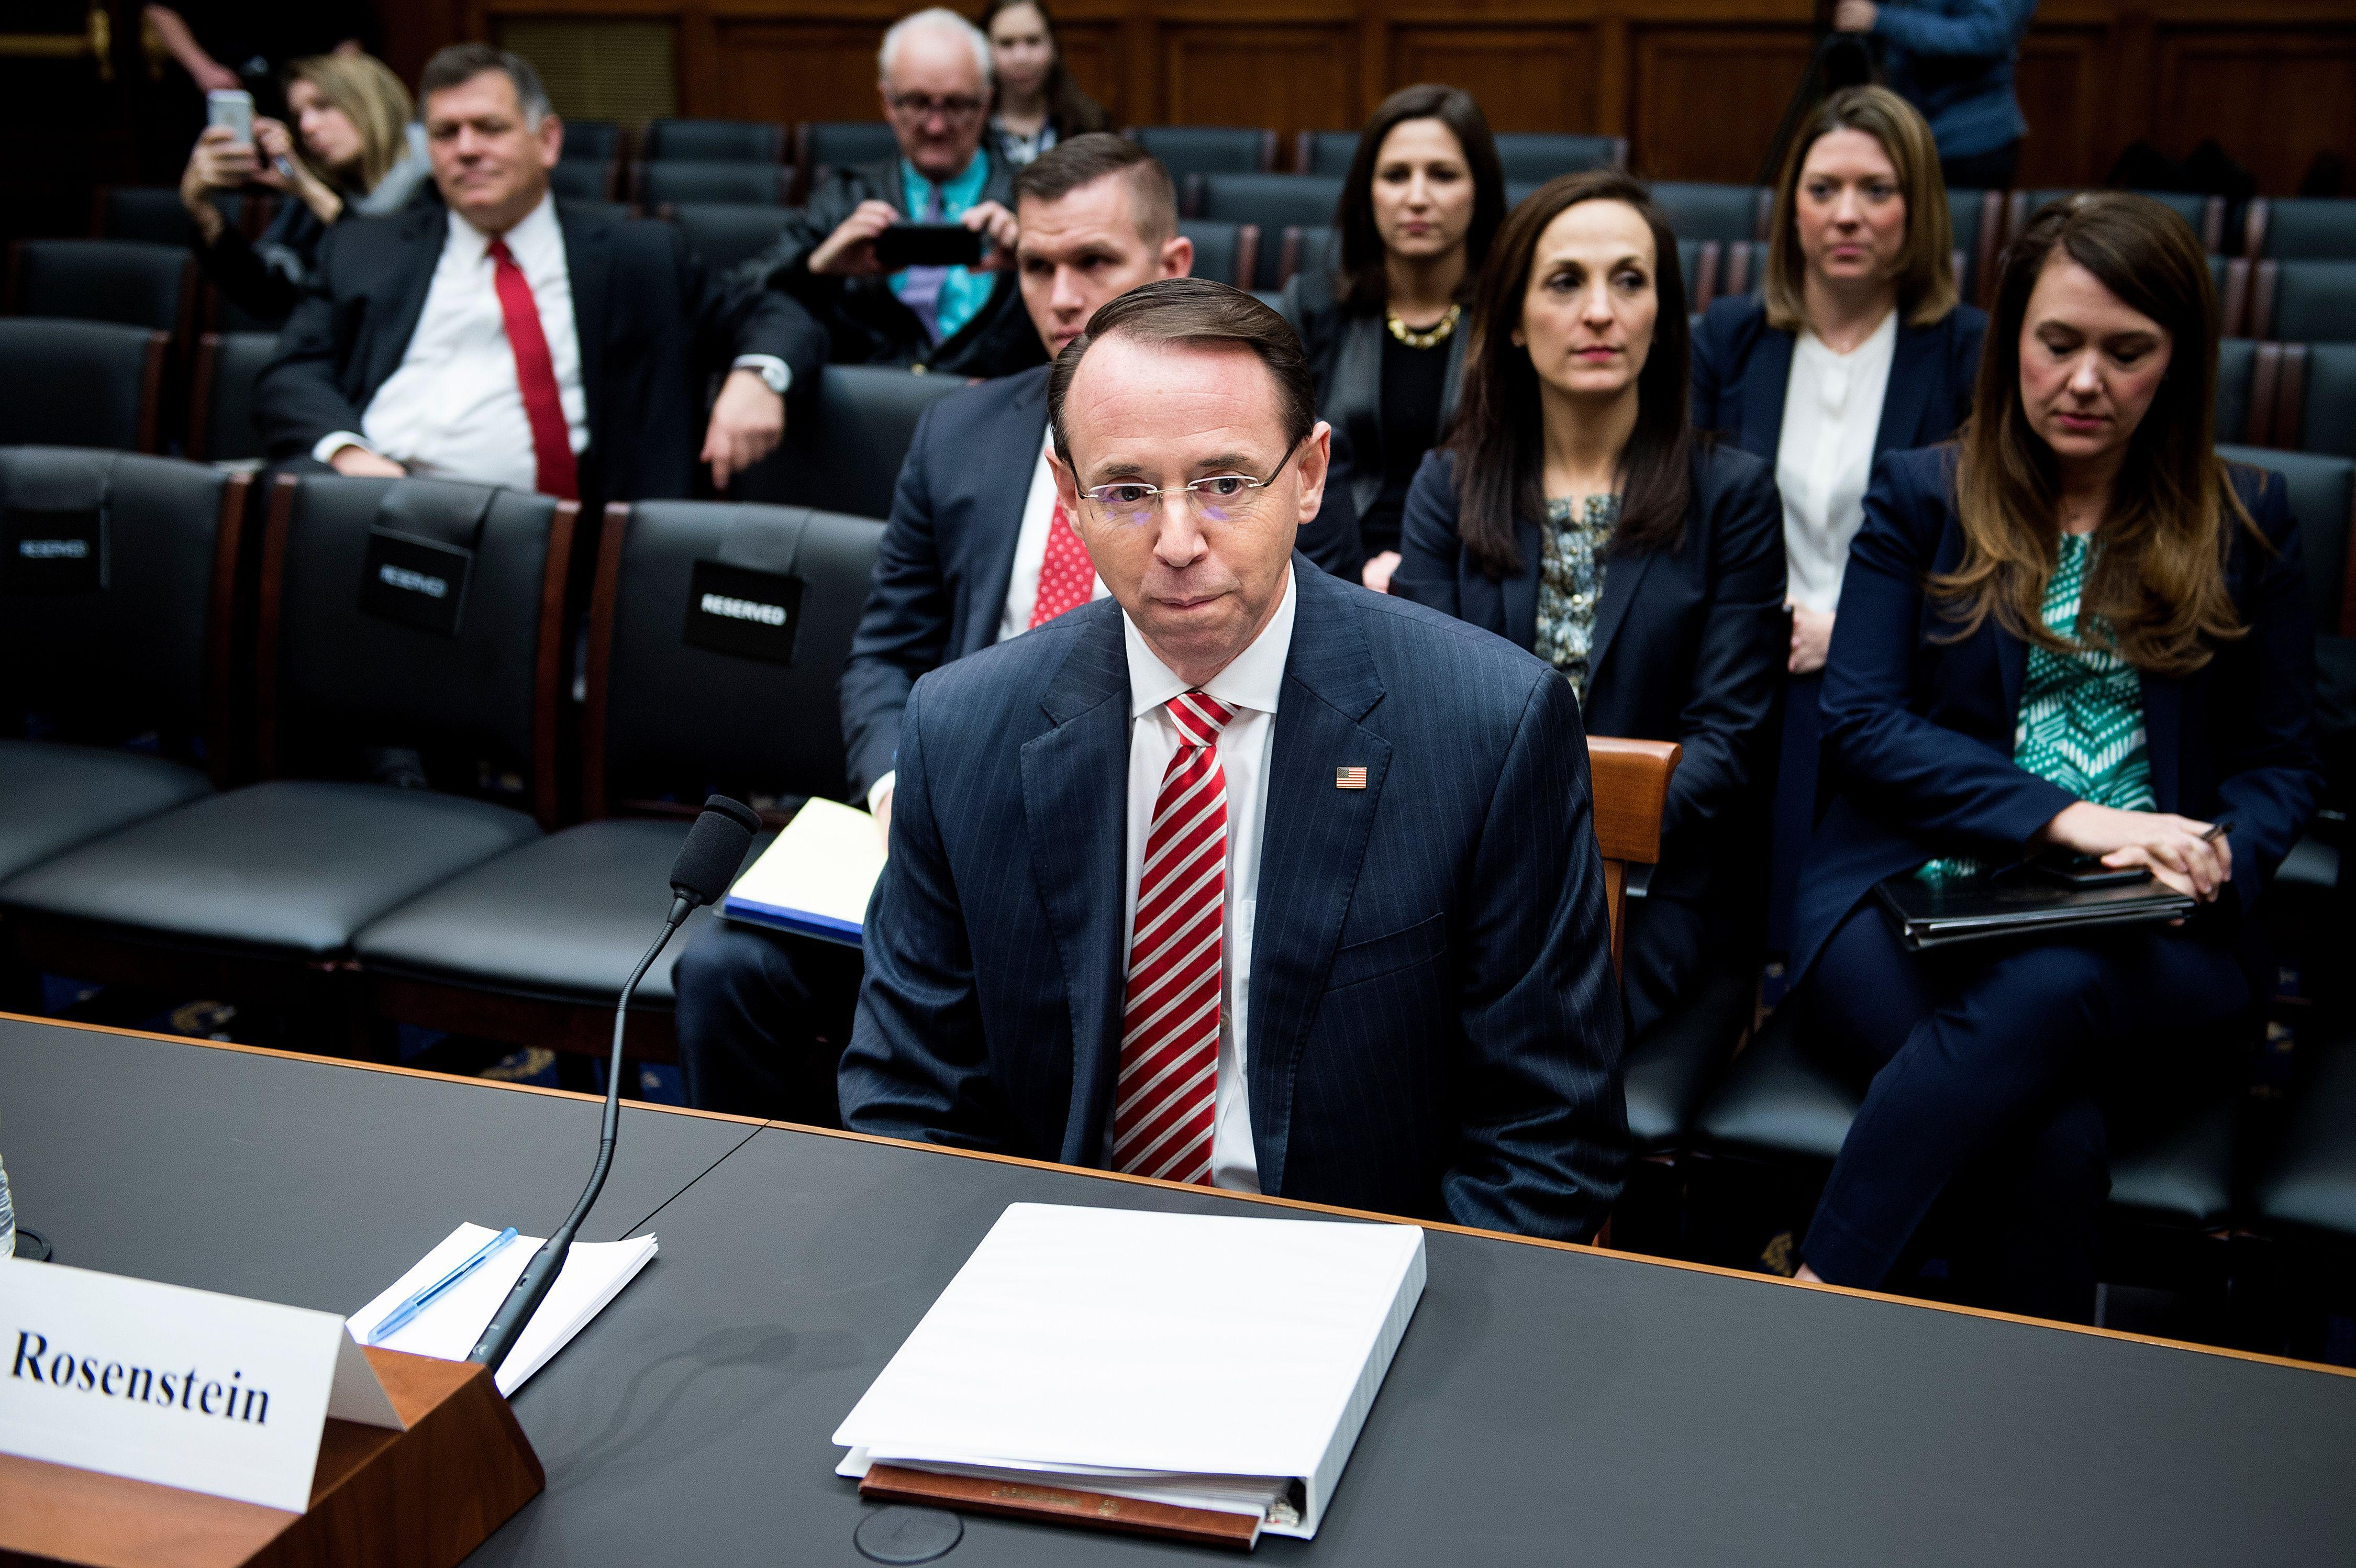 Deputy Attorney General Rod Rosenstein waits for a hearing of the House Judiciary Committee on Oversight on Wednesday in Washington.